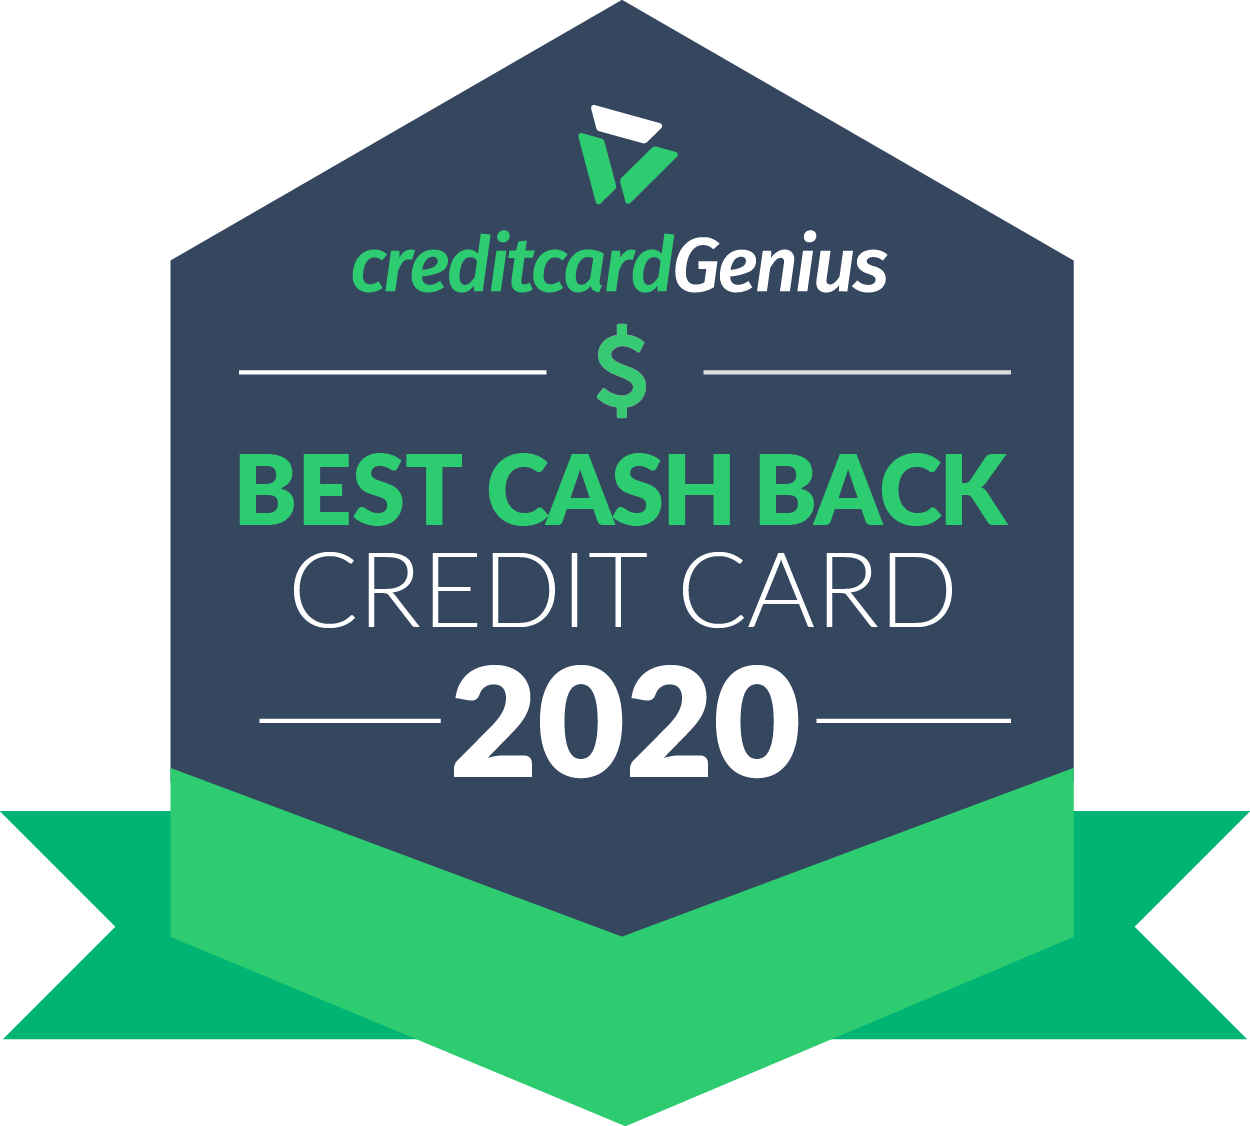 Best cash back credit cards in Canada for 2020 award seal